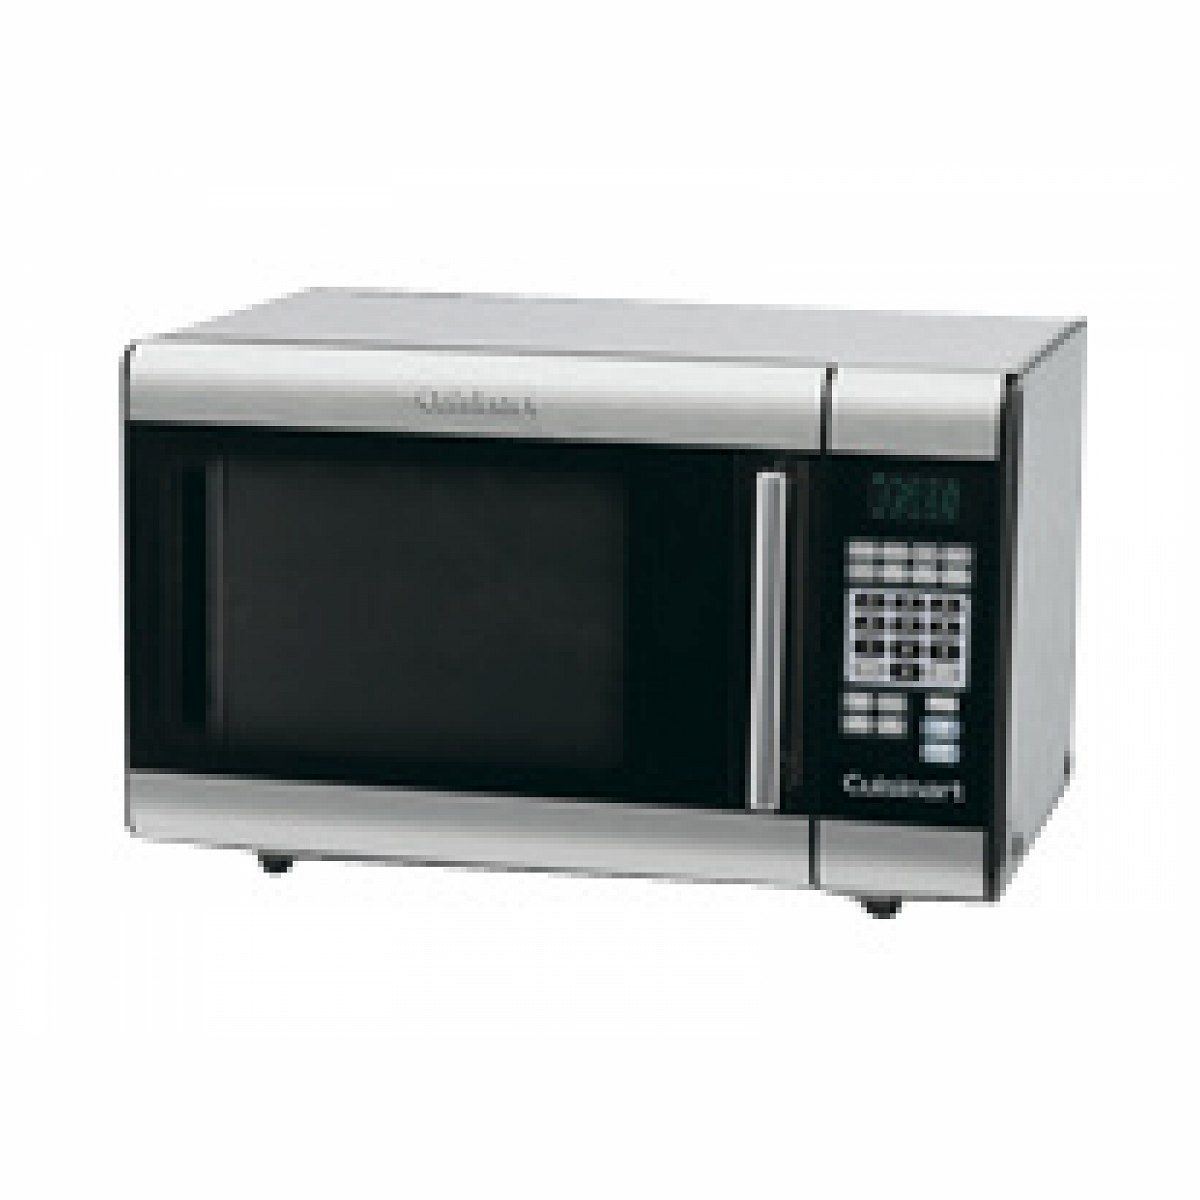 Cuisinart CMW-100 - Microwave oven - freestanding - 1 cu. ft - 1000 W - stainless steel